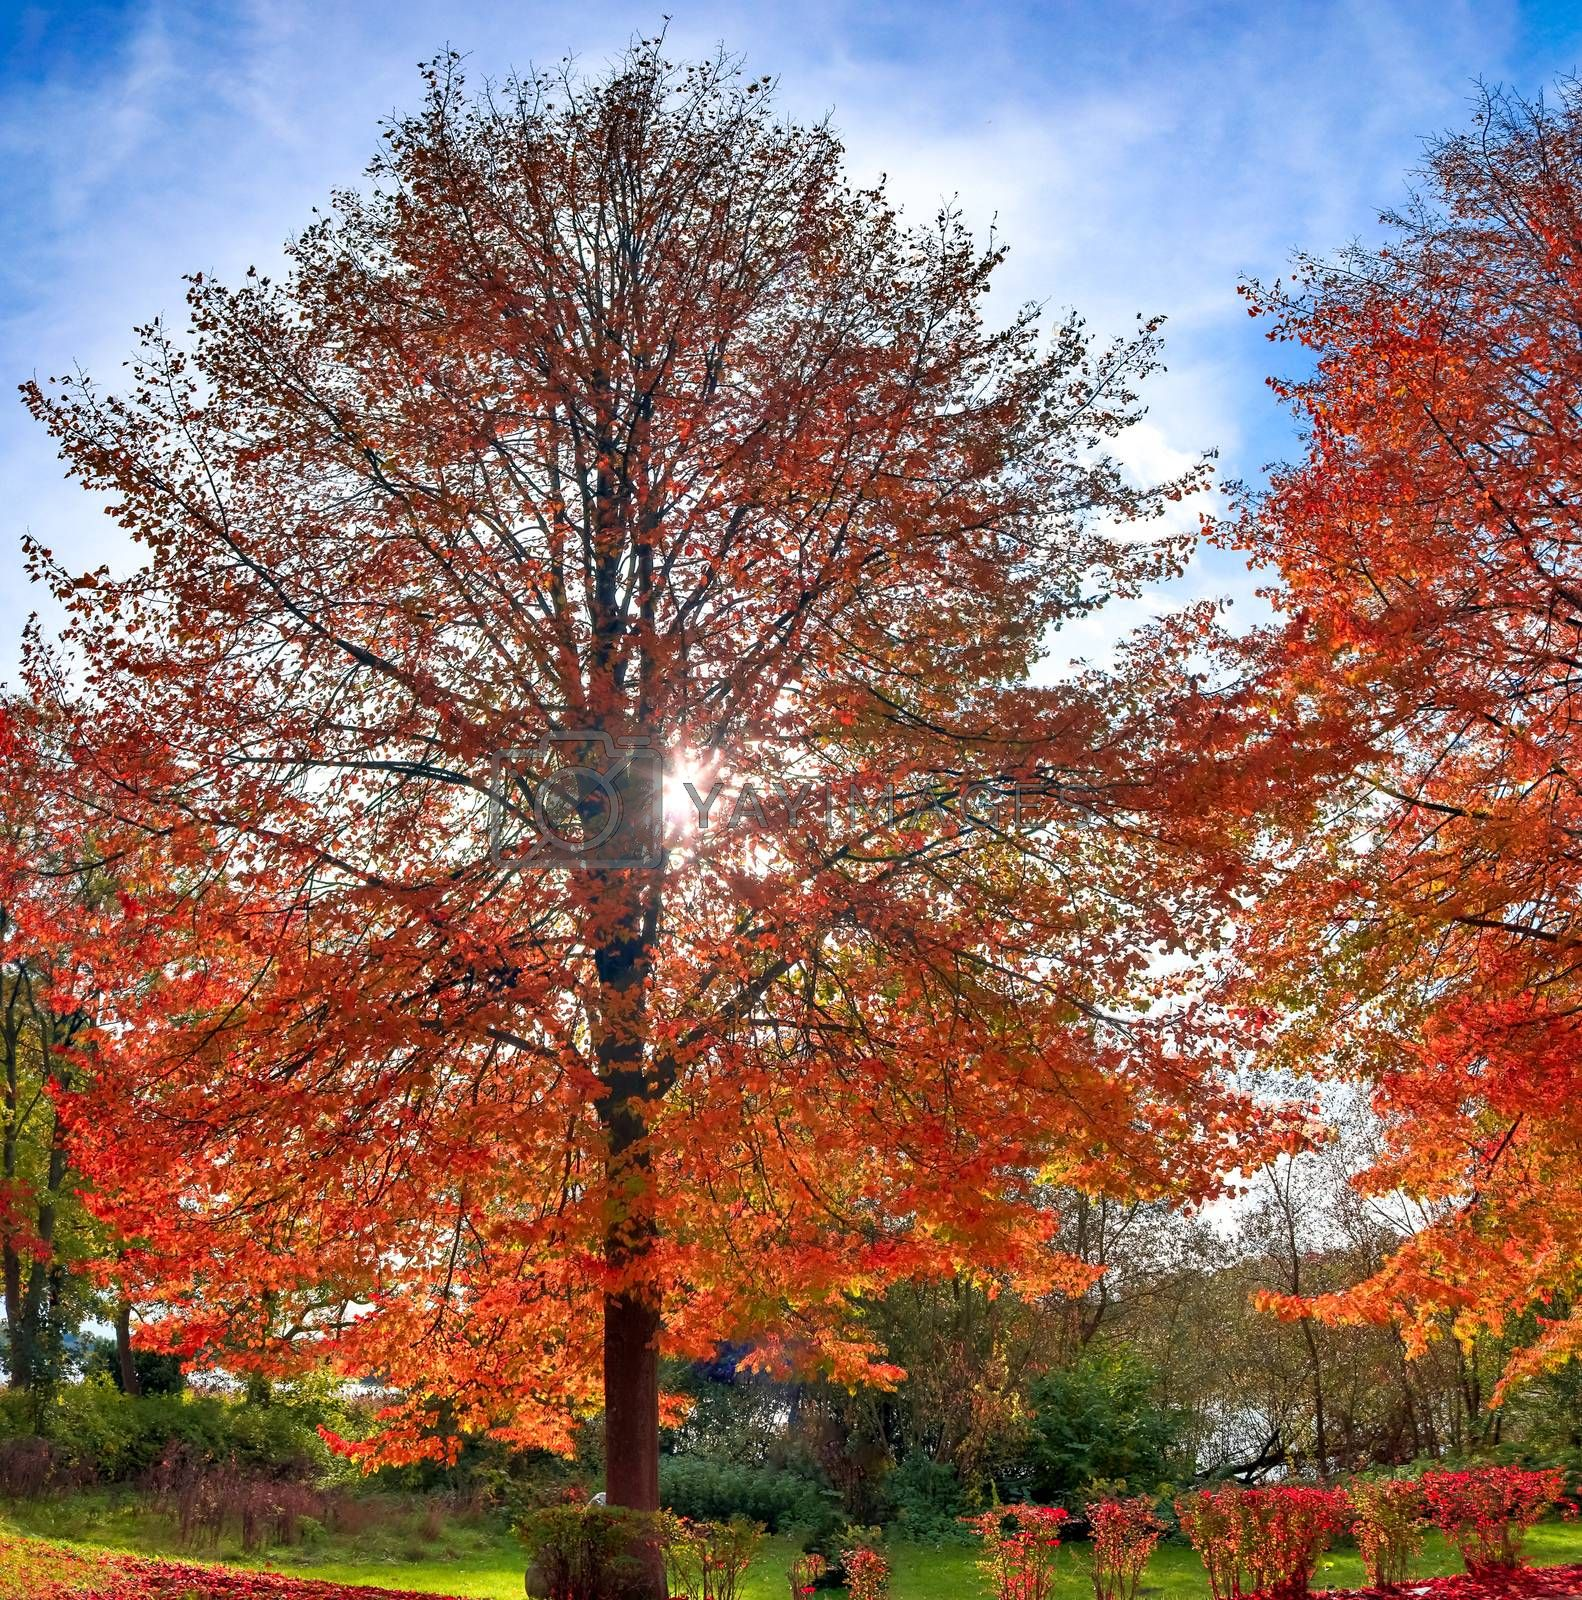 Beautiful autumn tree with red and orange colored leaves on a sunny day